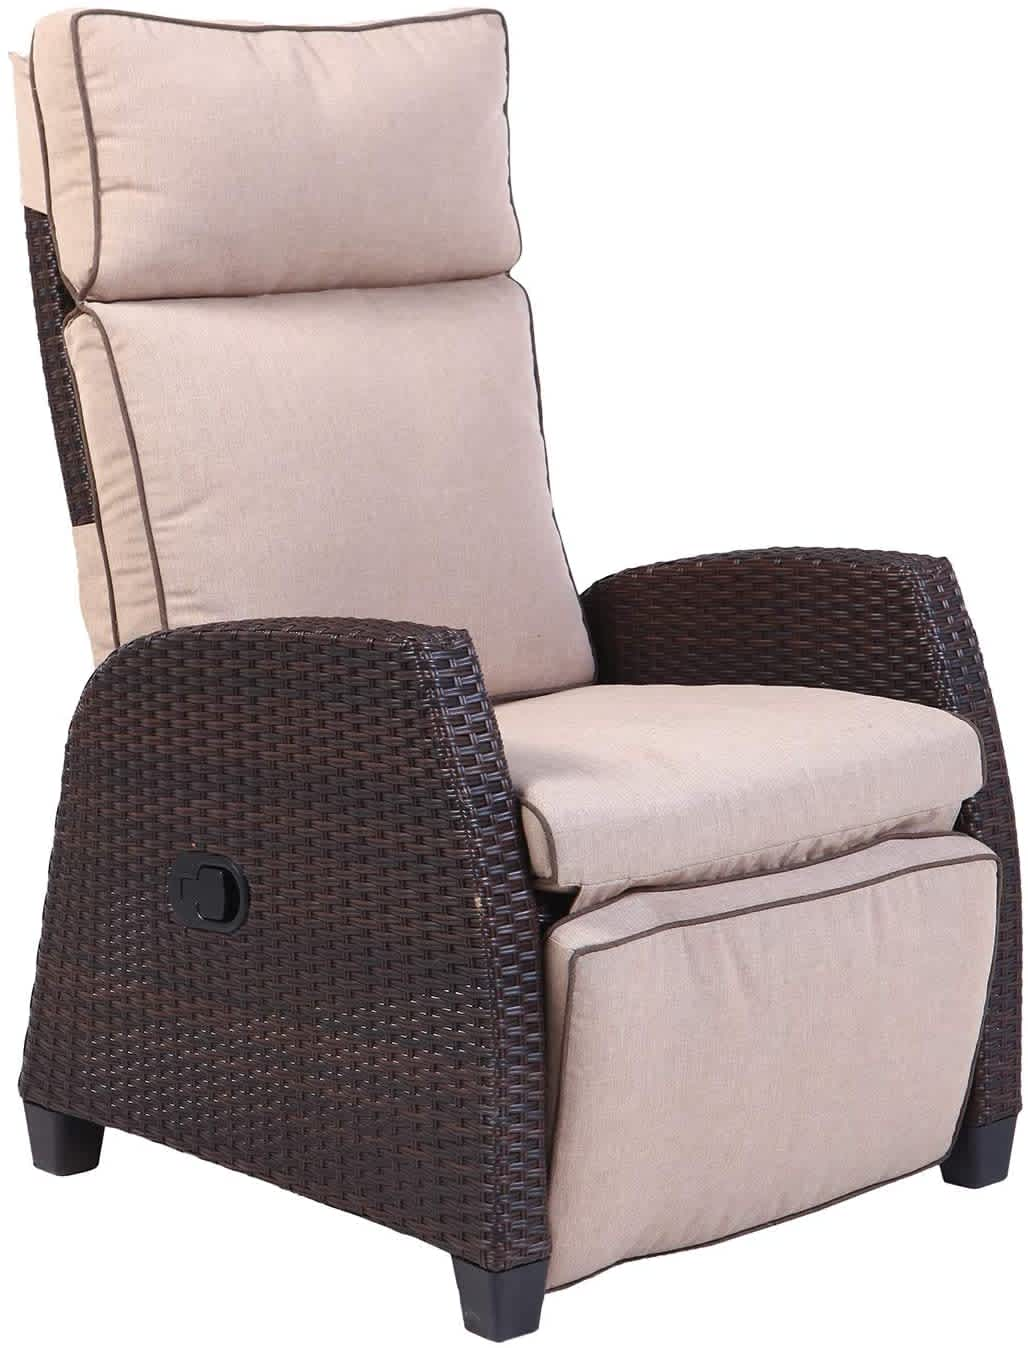 Grand Patio All-Weather Wicker Recliner